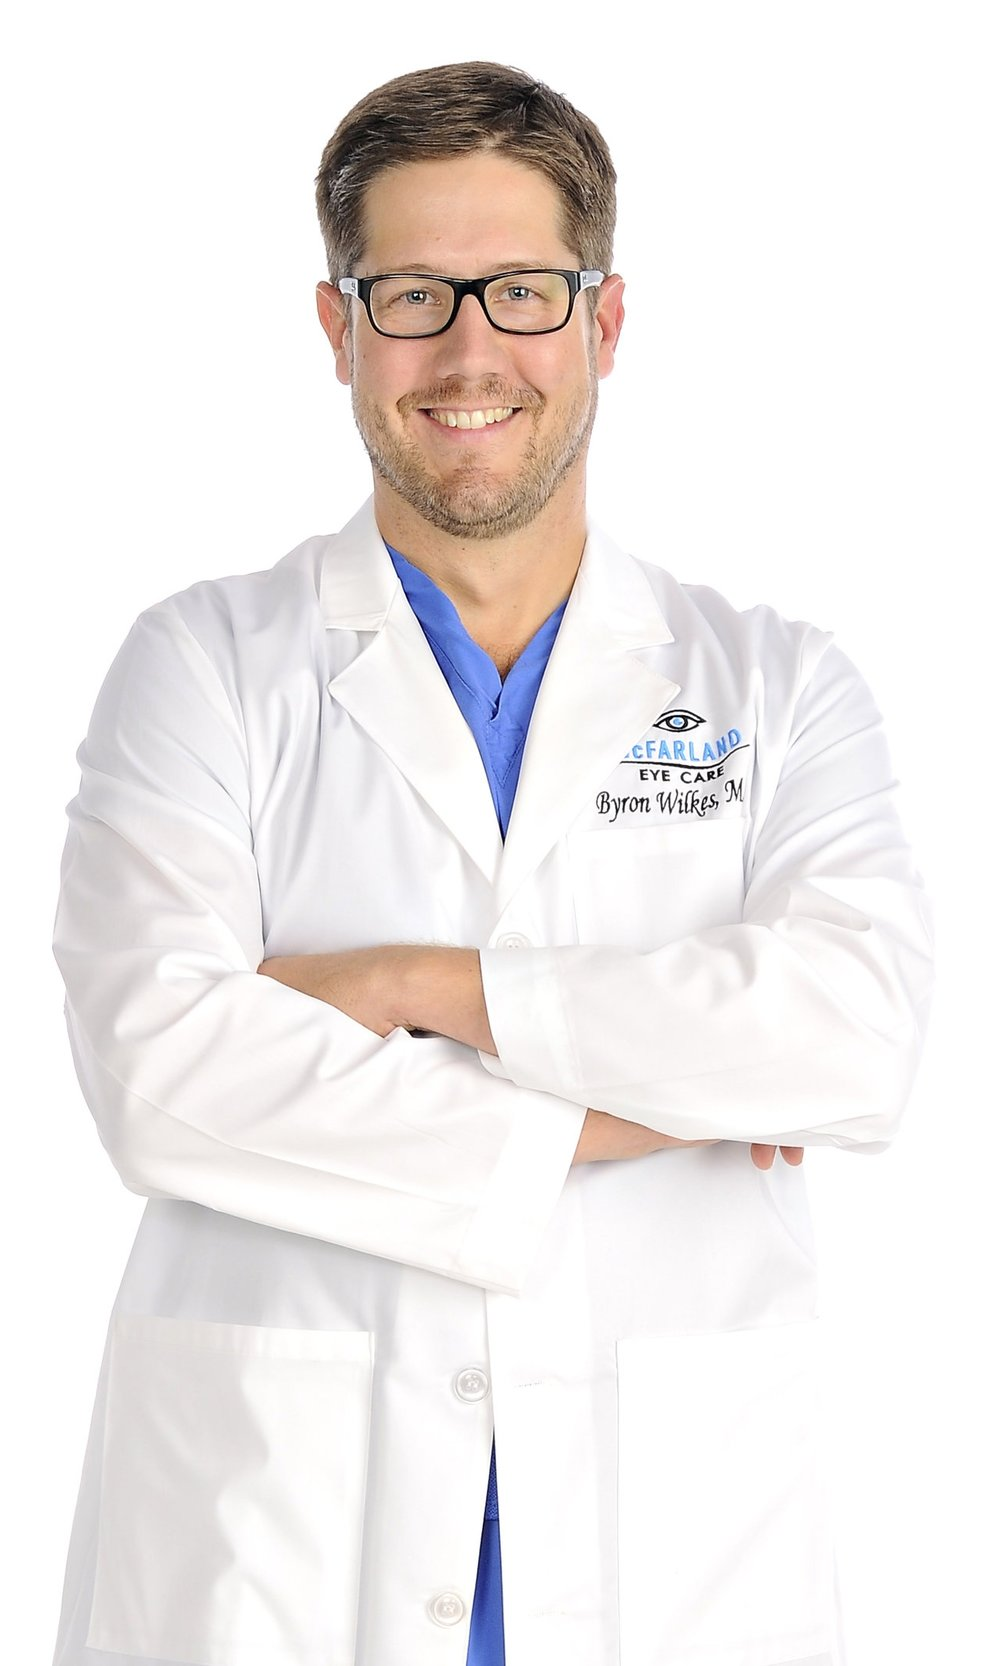 Dr. Byron Wilkes - McFarland Eye Care